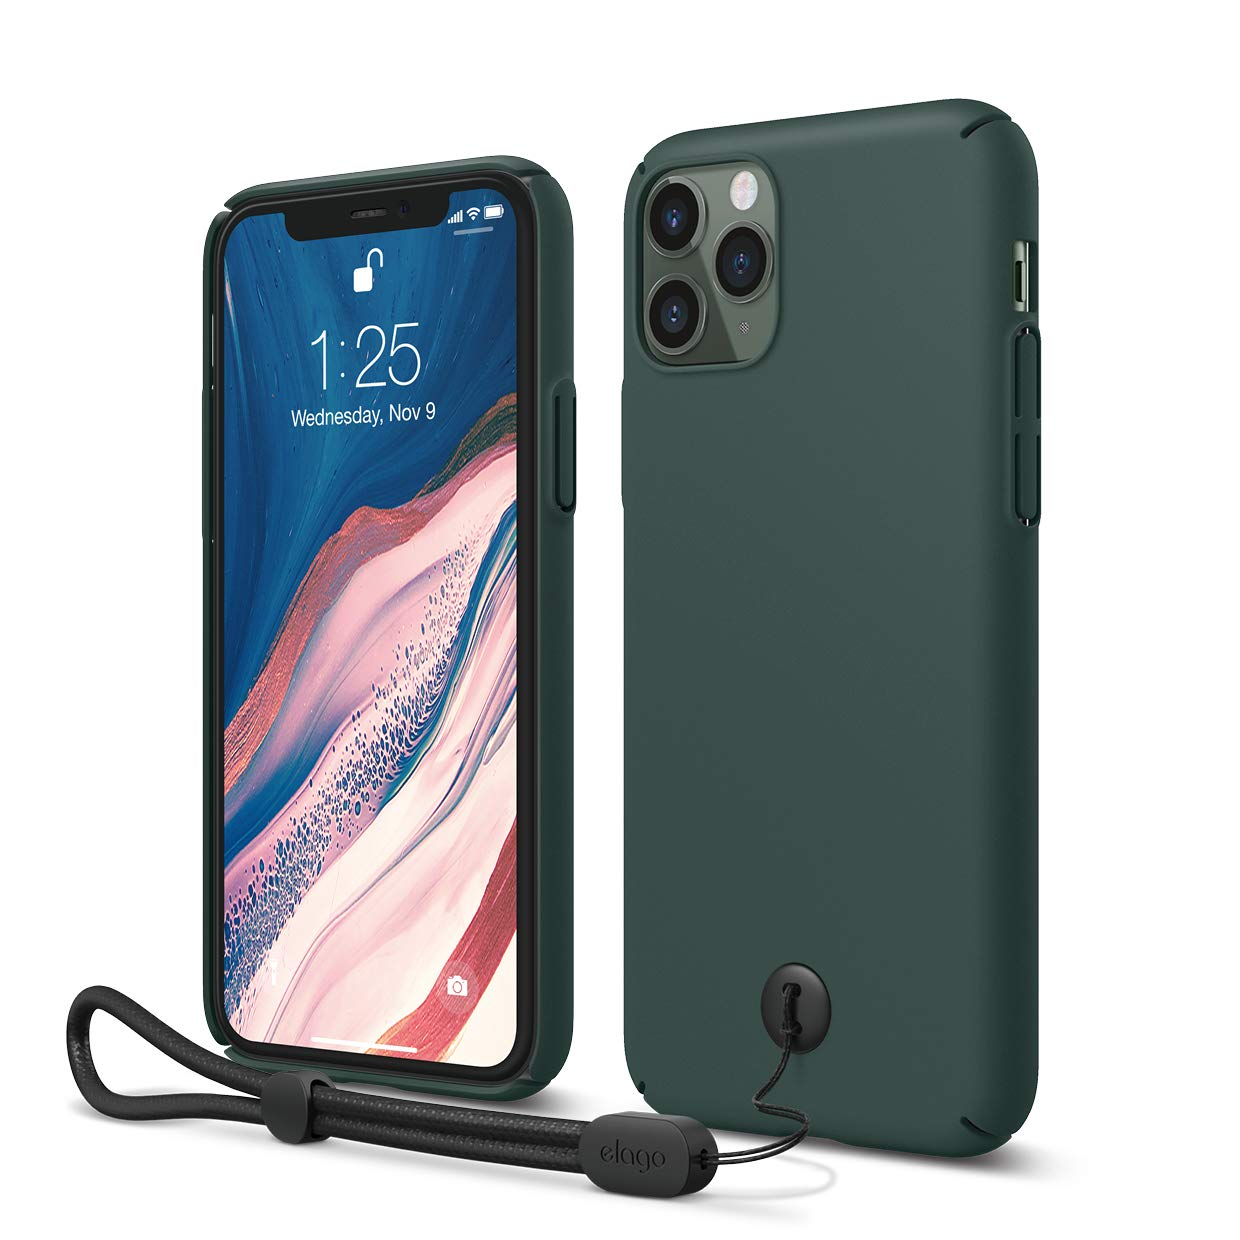 """elago iPhone 11 Pro Slim Fit Strap Case 5.8""""  Midnight Green  - Slim, Light, Simple Design, Matte Coating, Anti-Slip, Raised Lip, Attachable Strap and Button, Fit Tested [Made in Korea]"""